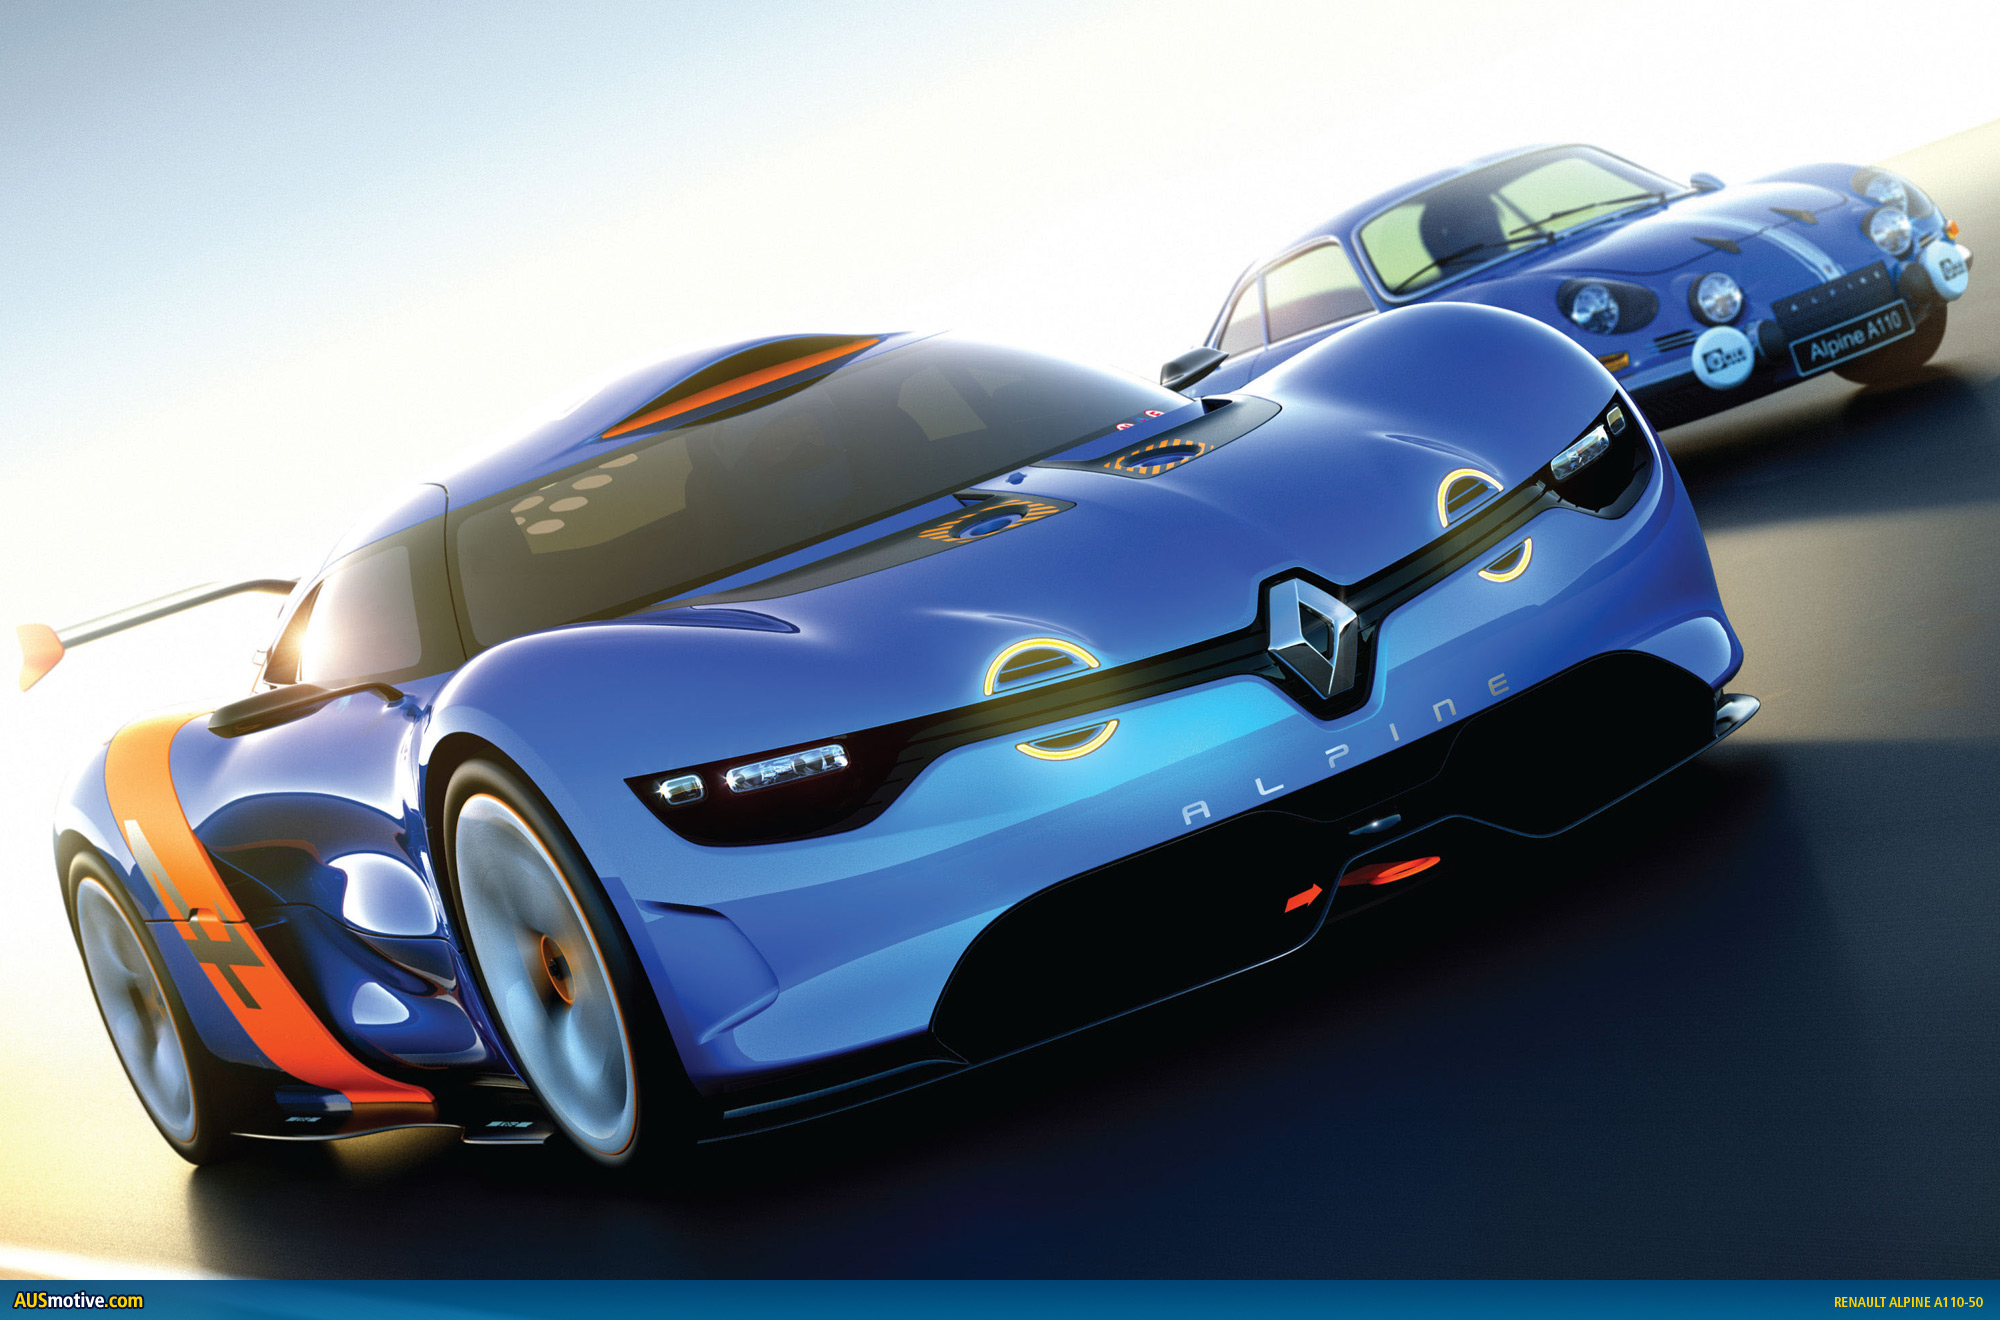 renault alpine a110 50 revealed. Black Bedroom Furniture Sets. Home Design Ideas